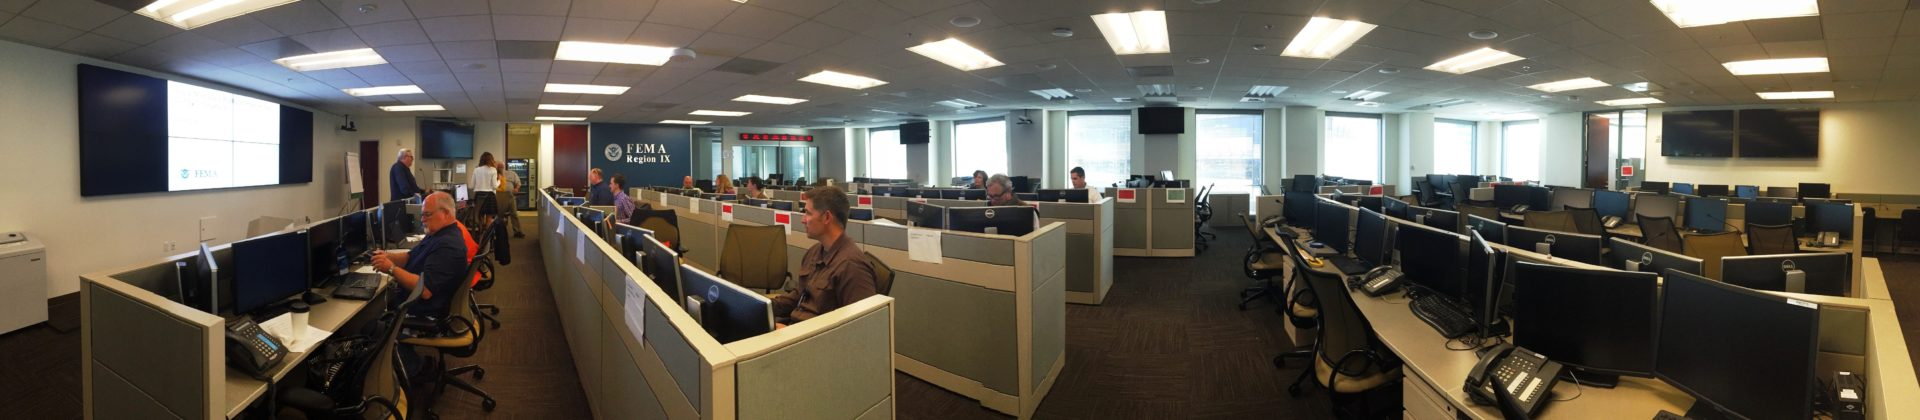 FEMA Disaster Coordination Room